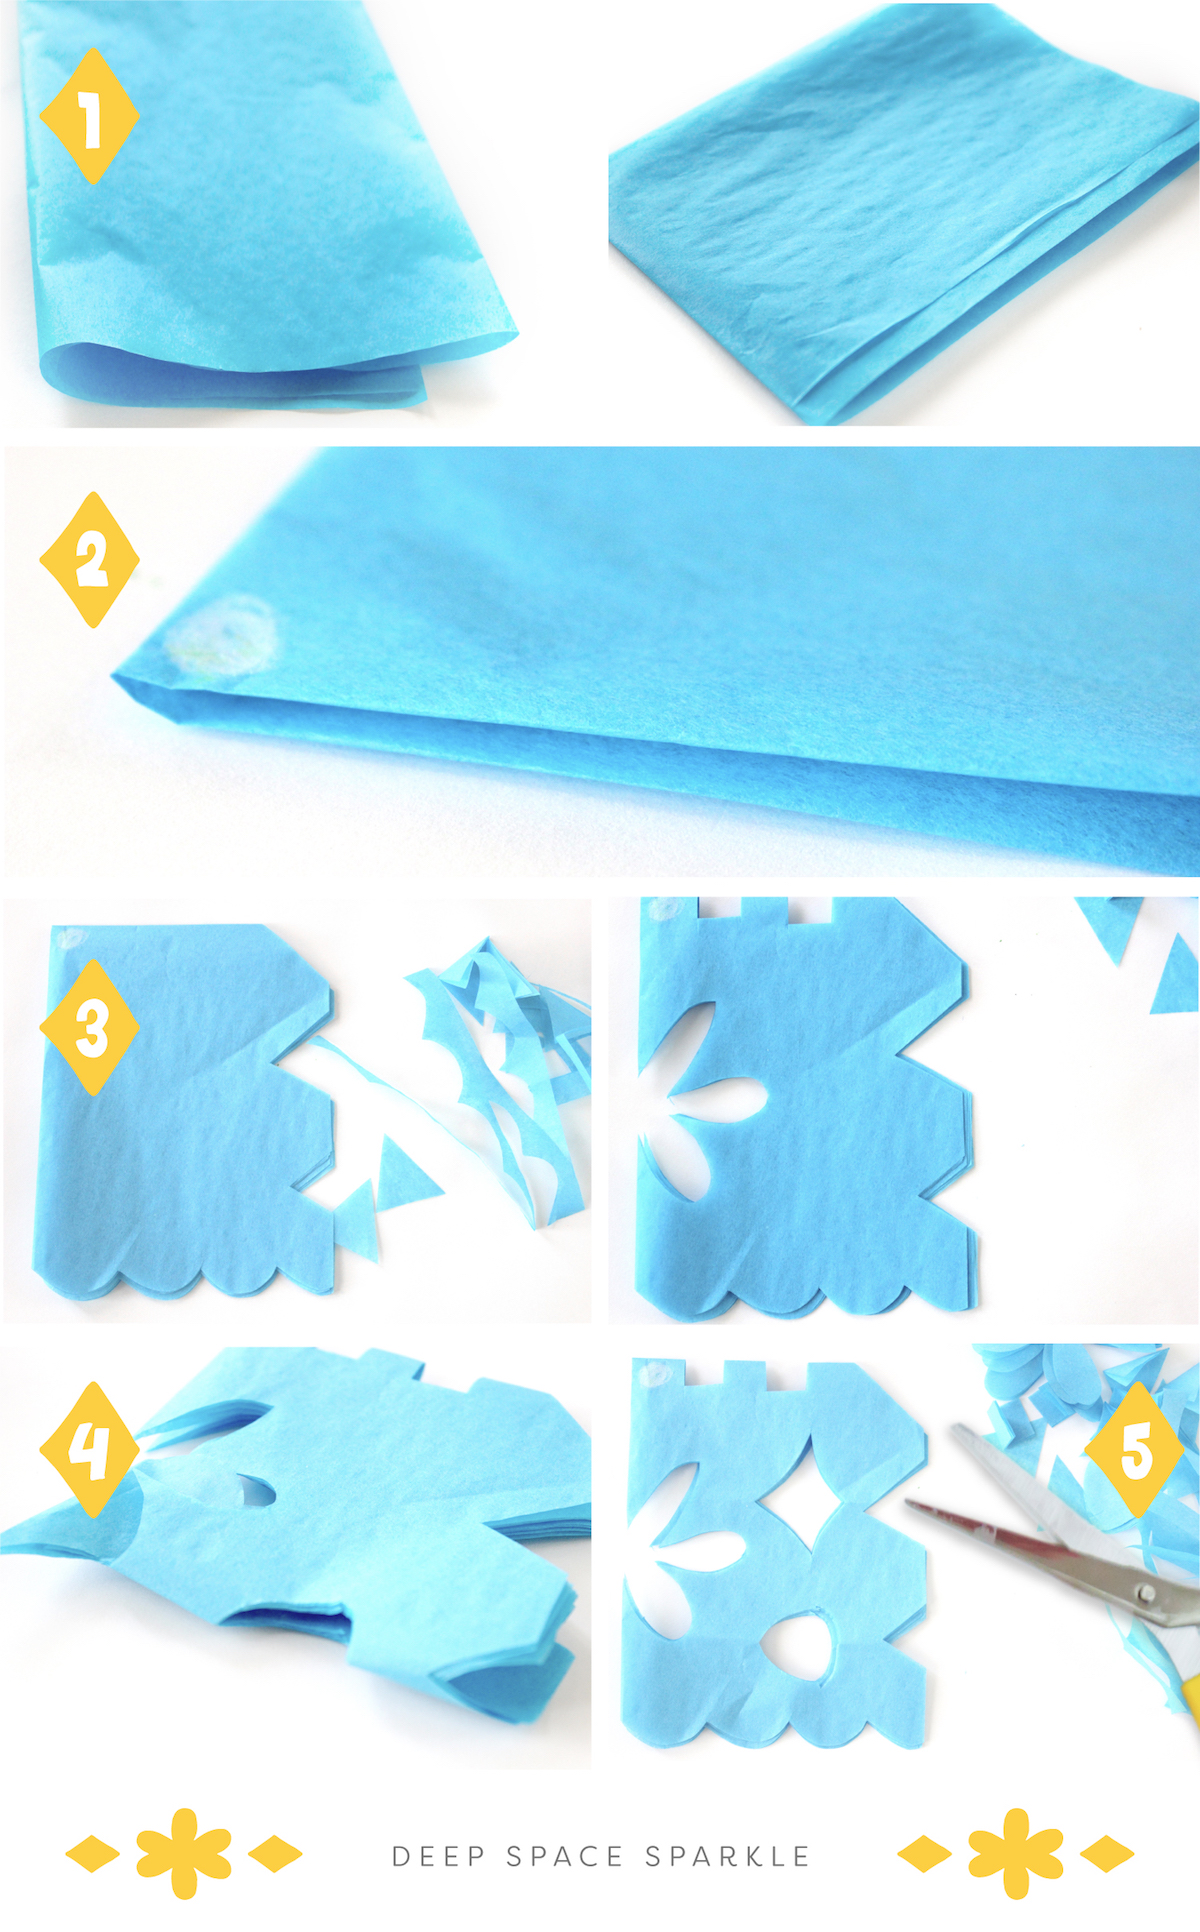 How to make papel picado deep space sparkle art projects for kids with how to steps and instructions